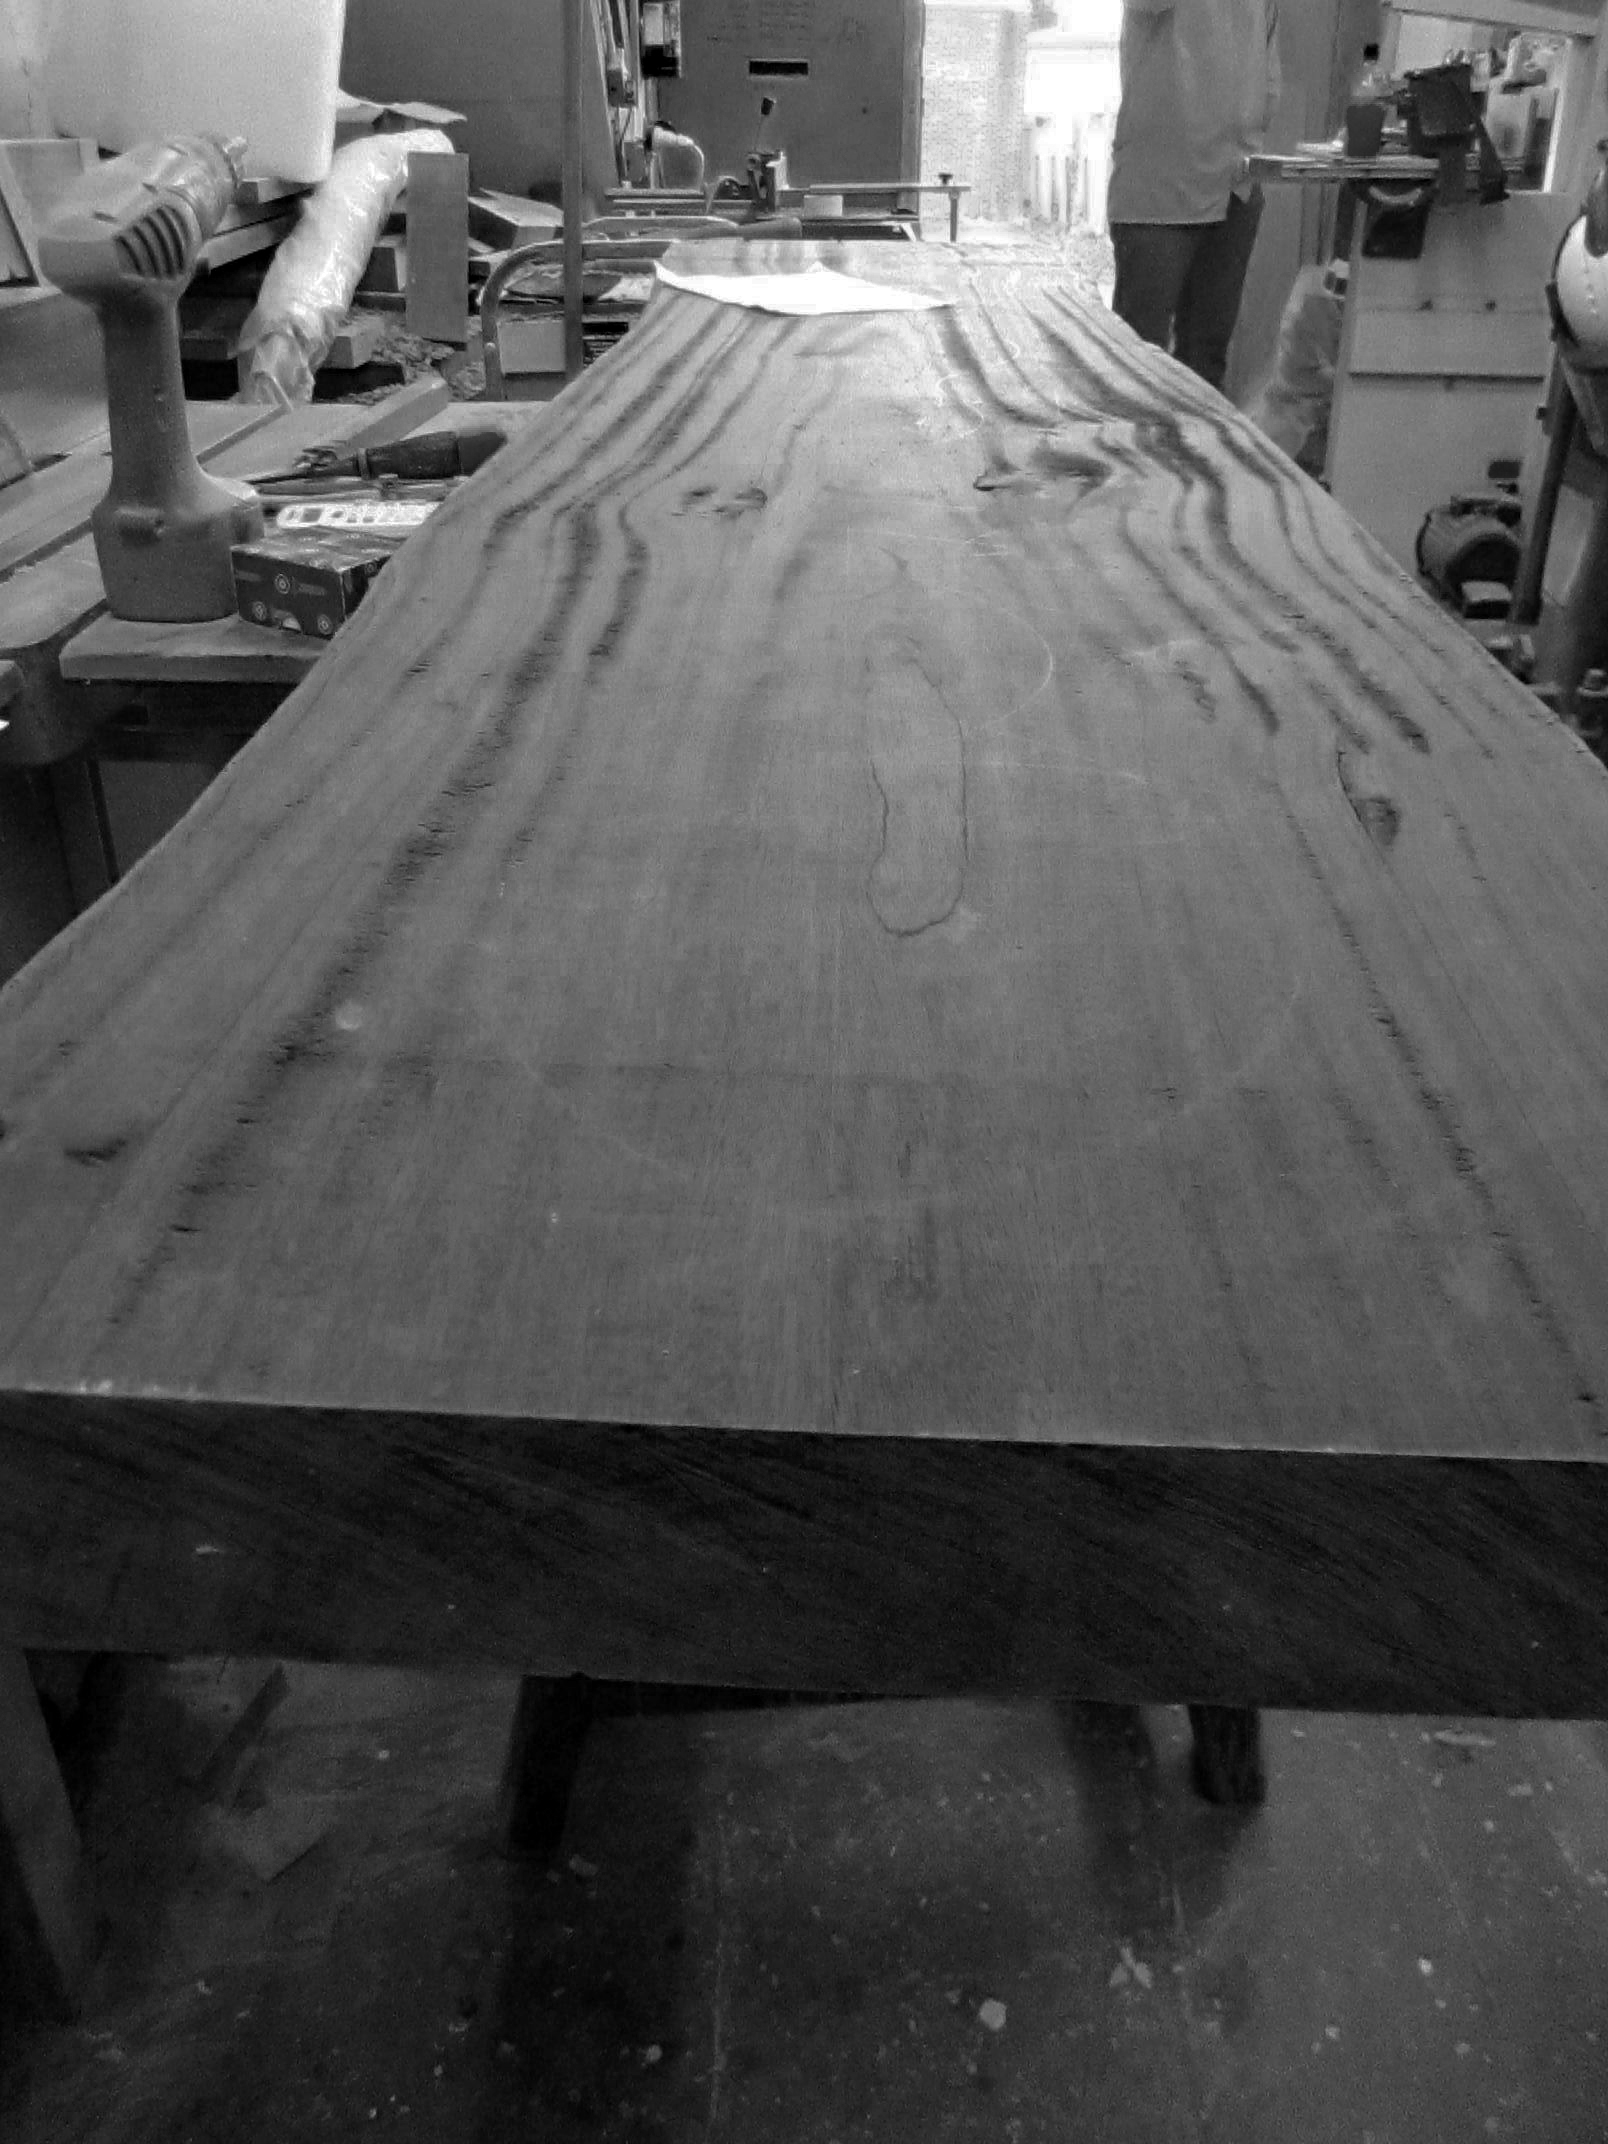 timber ready for cutting and turning into salad bowls